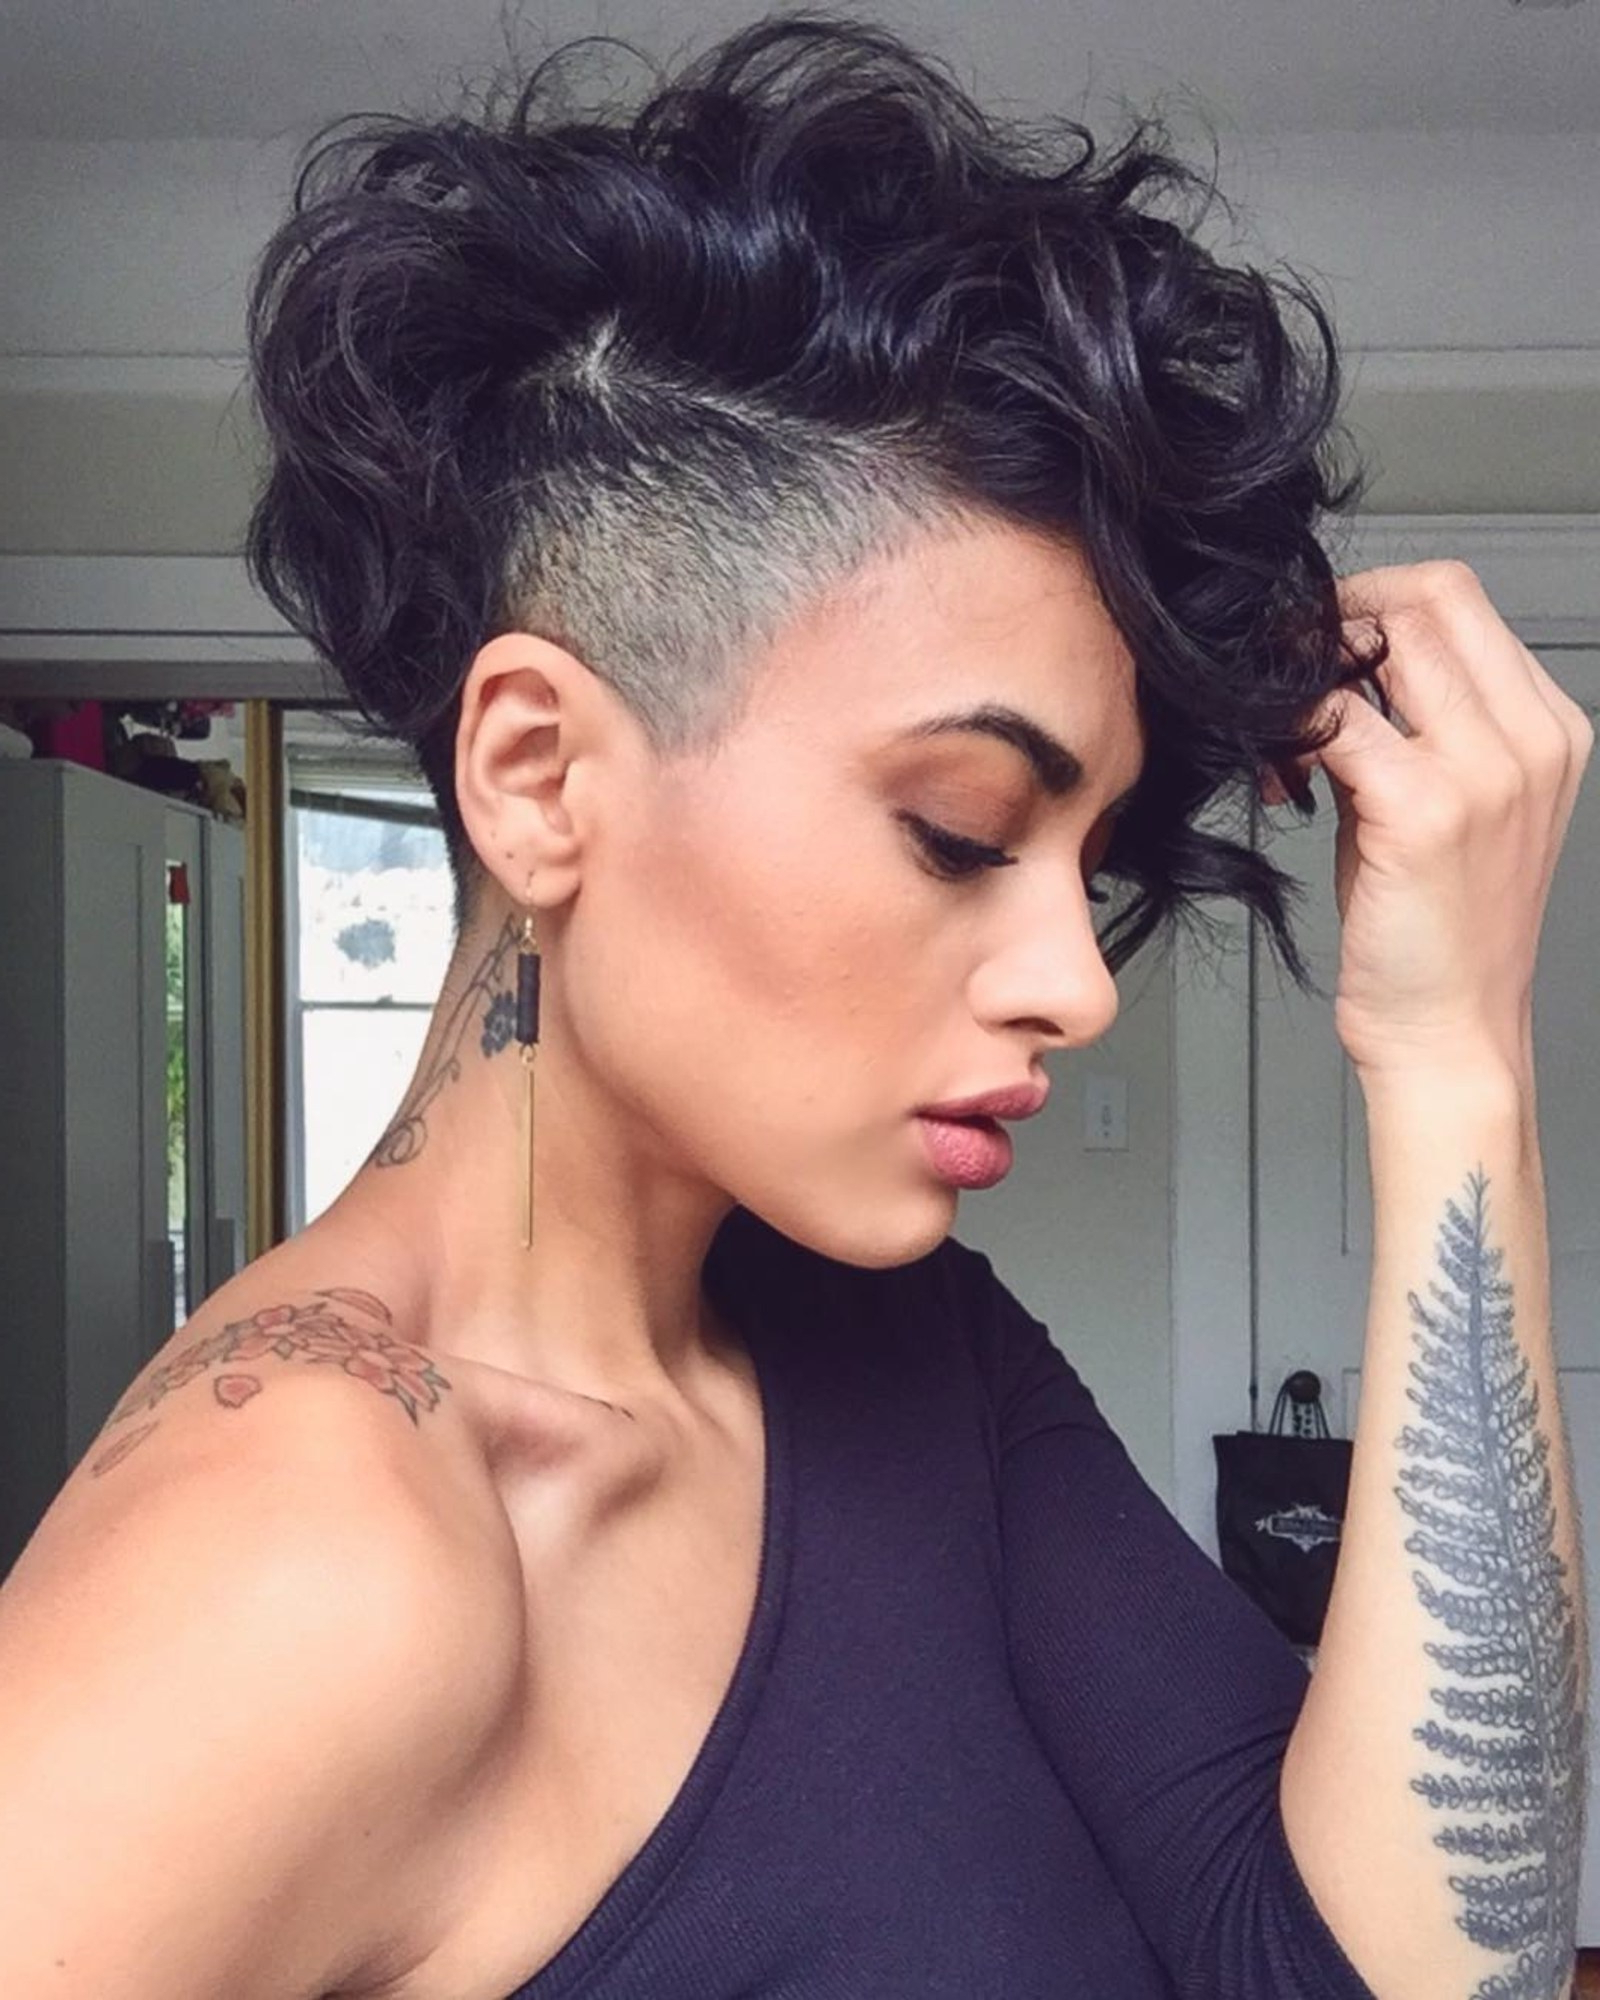 28 Curly Pixie Cuts That Are Perfect For Fall 2017 – Glamour Intended For Edgy Short Curly Haircuts (View 5 of 25)